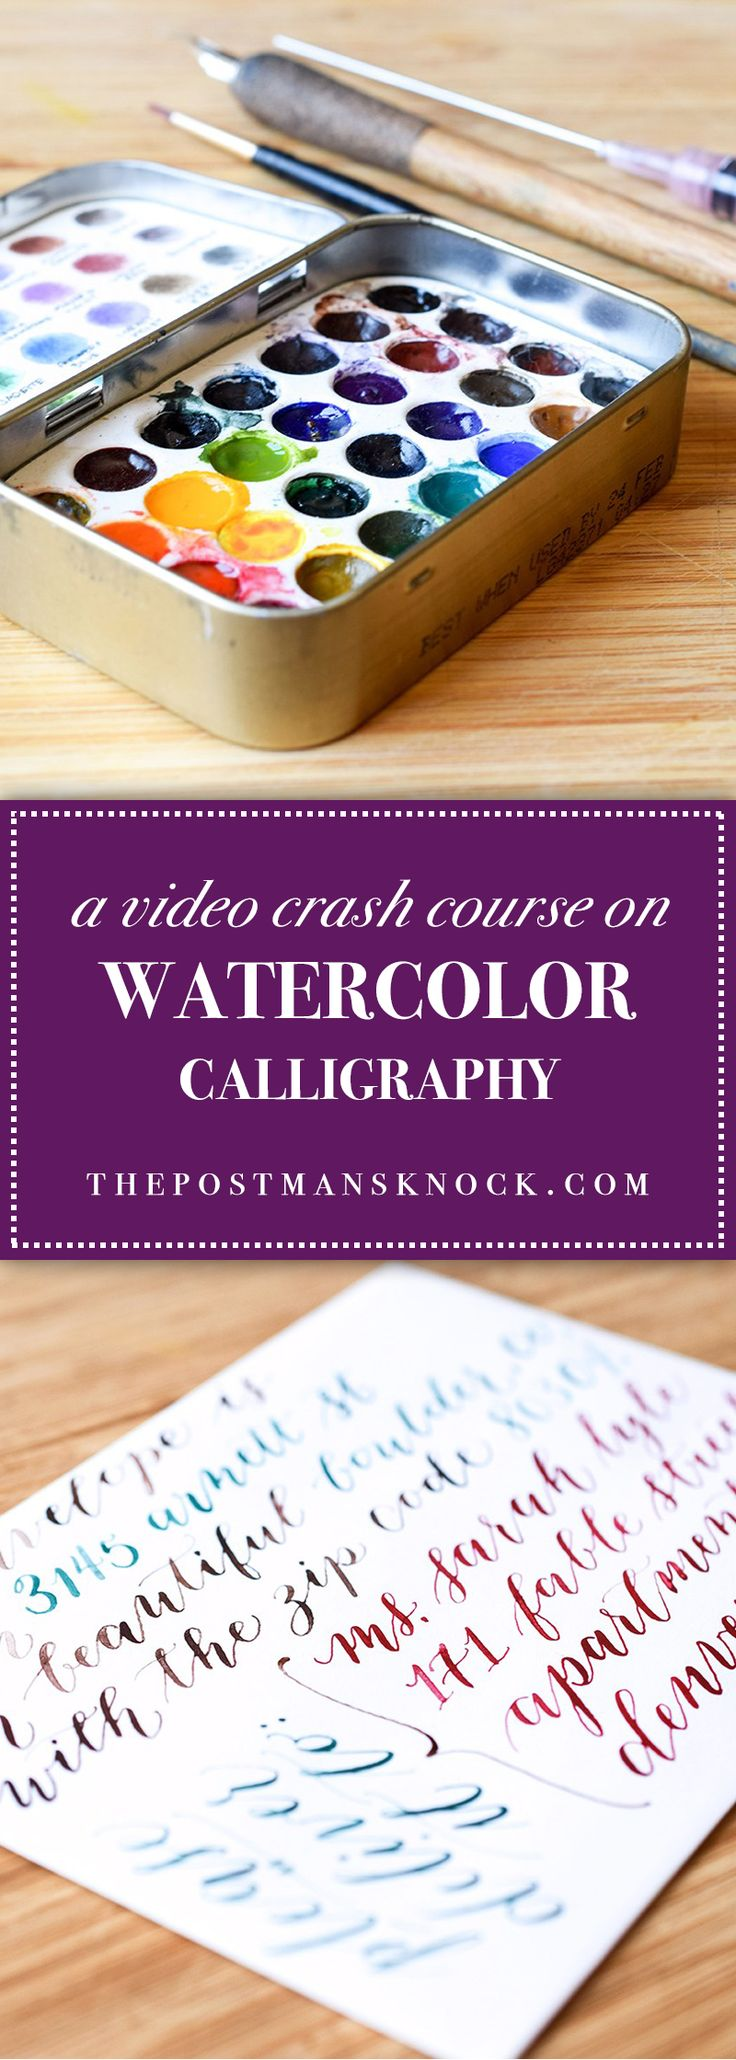 You don't need ink to create dip pen calligraphy ... try painting watercolor on the back of your nib to make watercolor calligraphy! Detailed tutorial with videos.